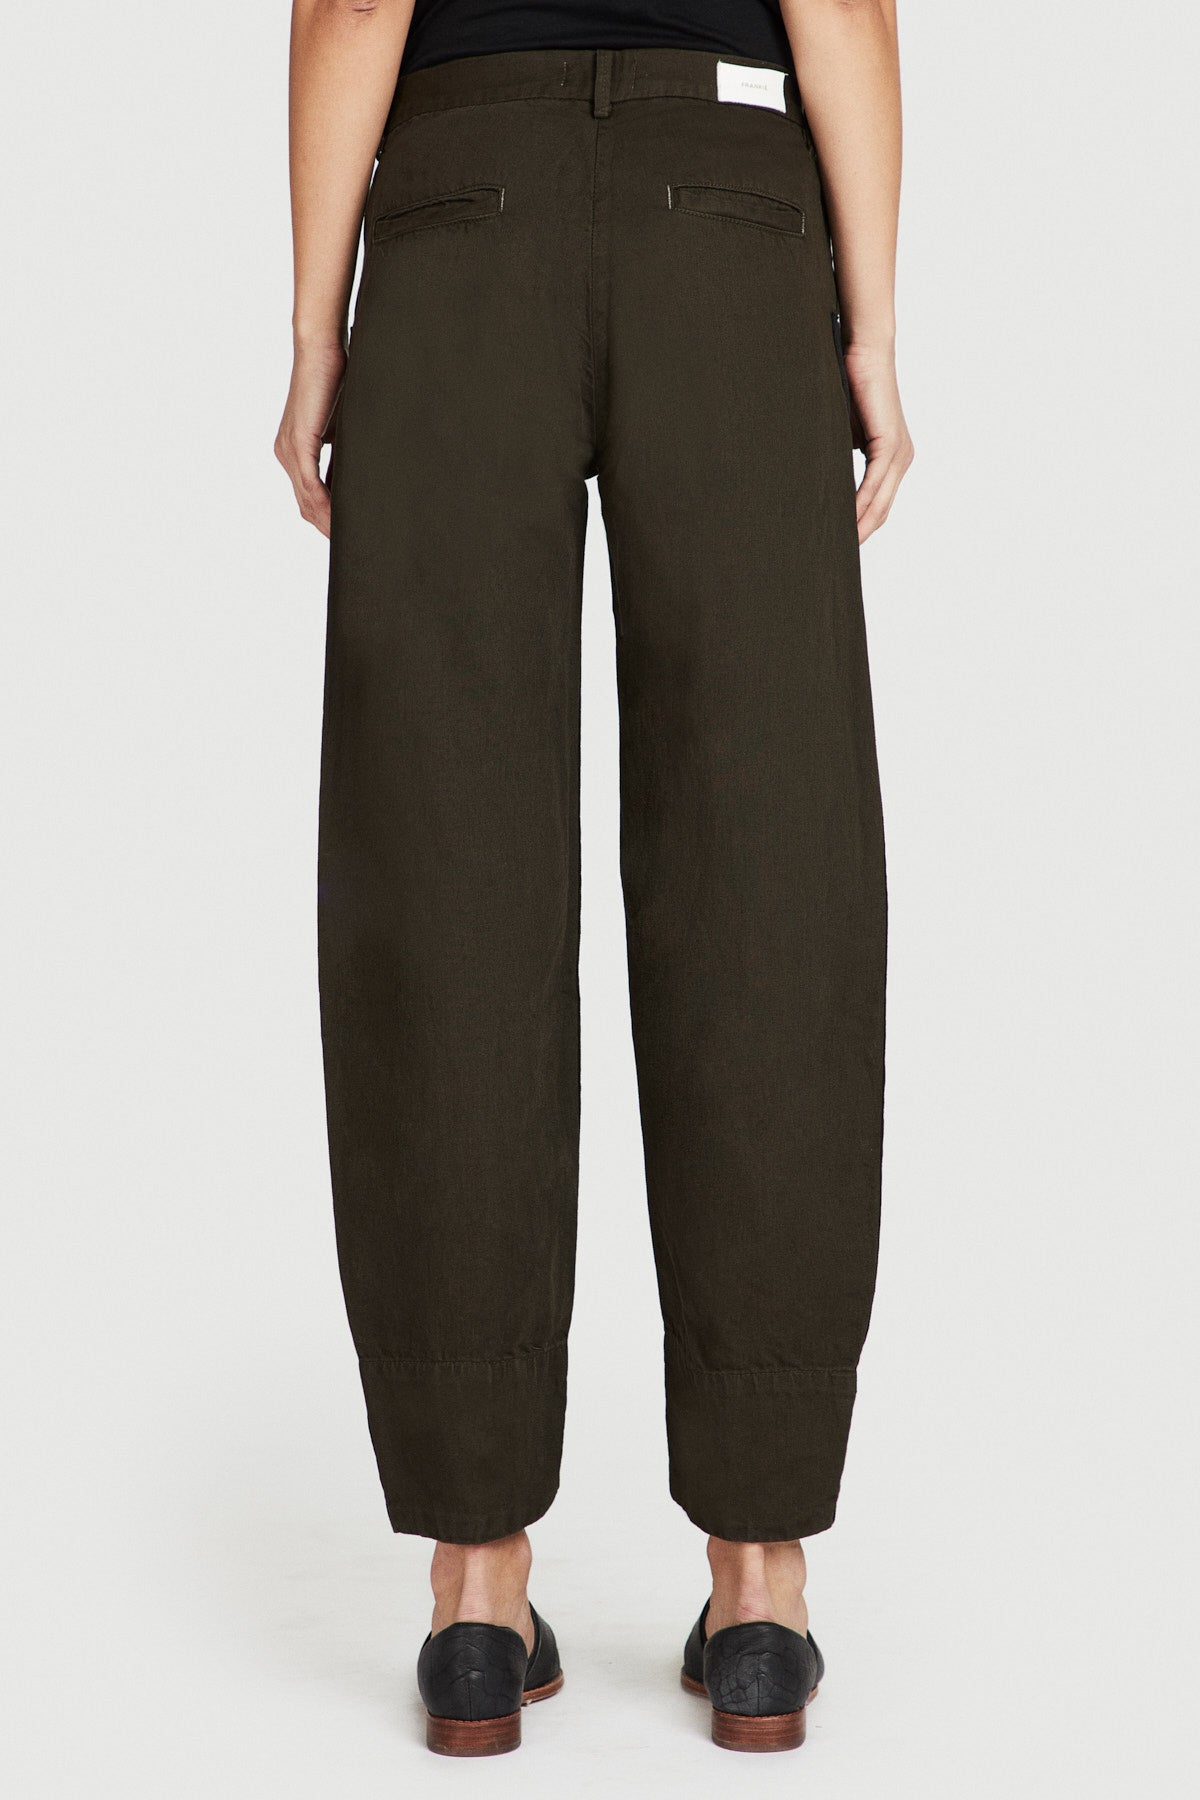 Big Cuff Carrot Trouser in Olive